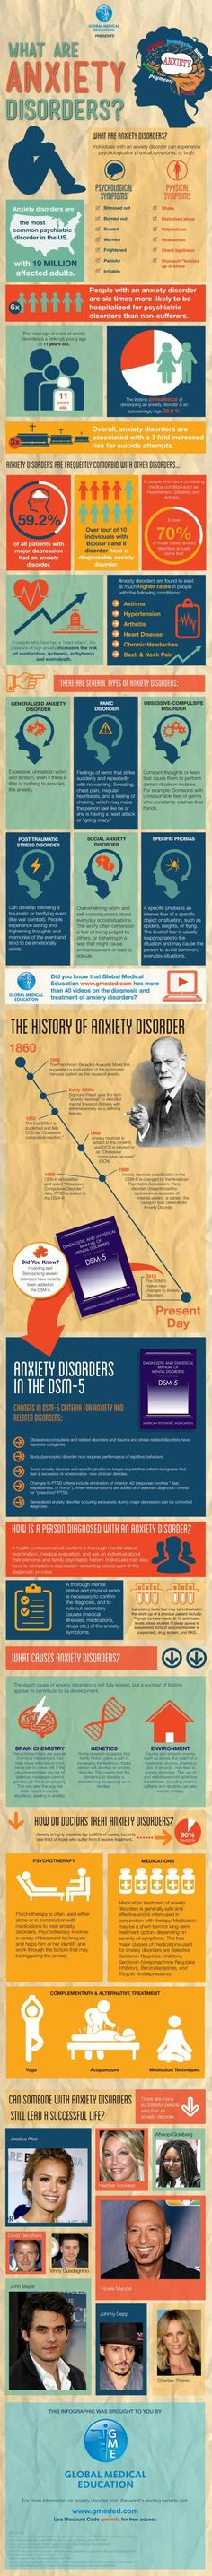 What Are Anxiety Disorders? - http://www.coolinfoimages.com/infographics/what-are-anxiety-disorders/